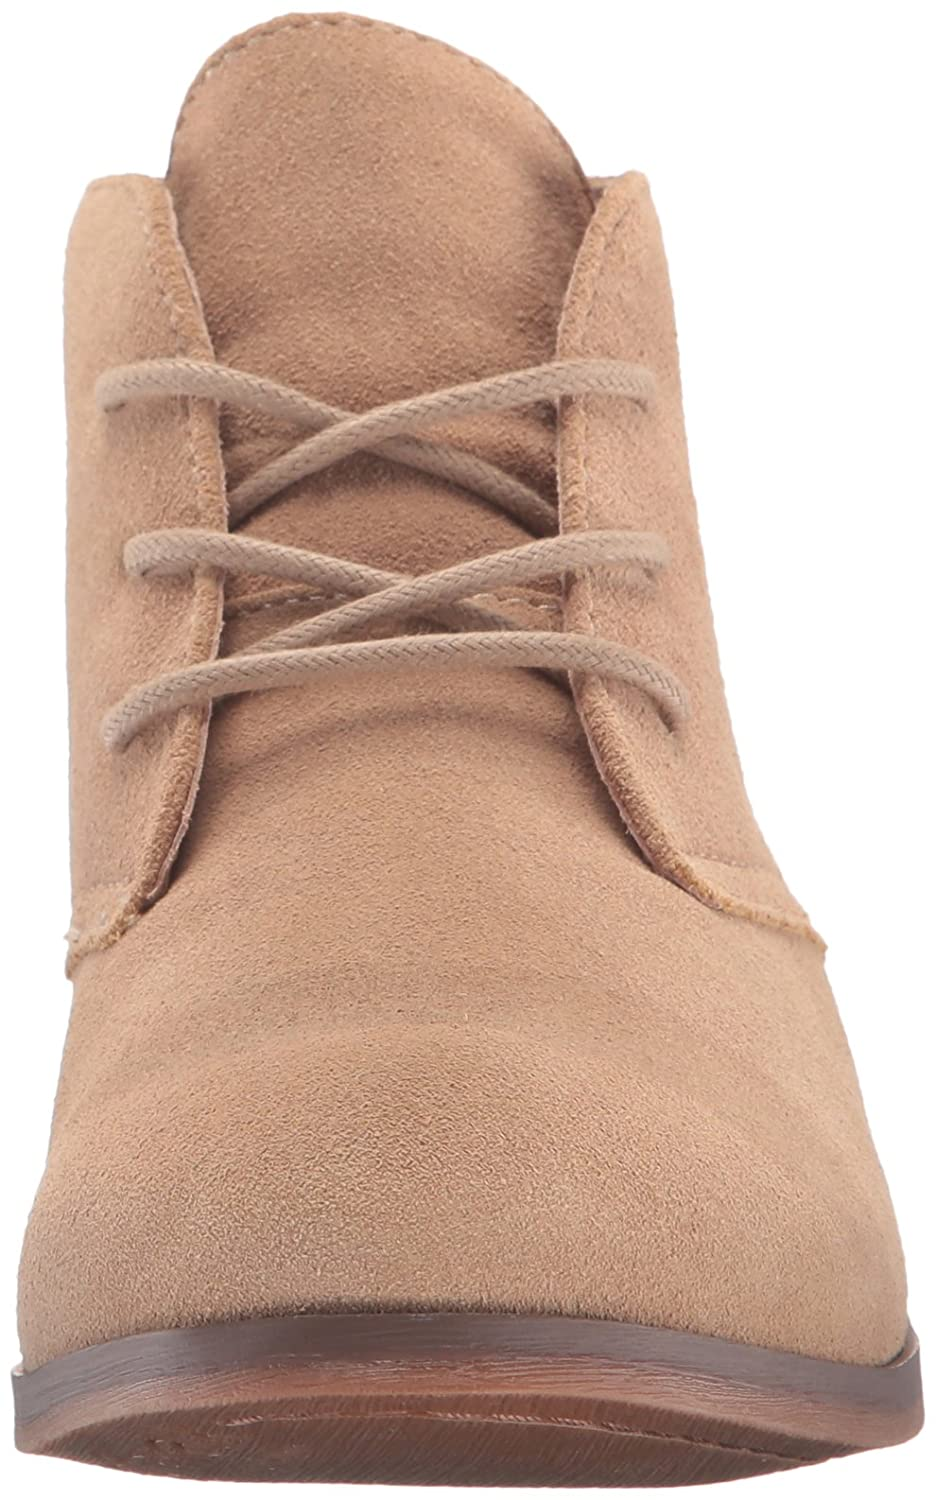 SoftWalk Women's Ramsey Boot B019QMJ8LE 6 W US|Sand Suede